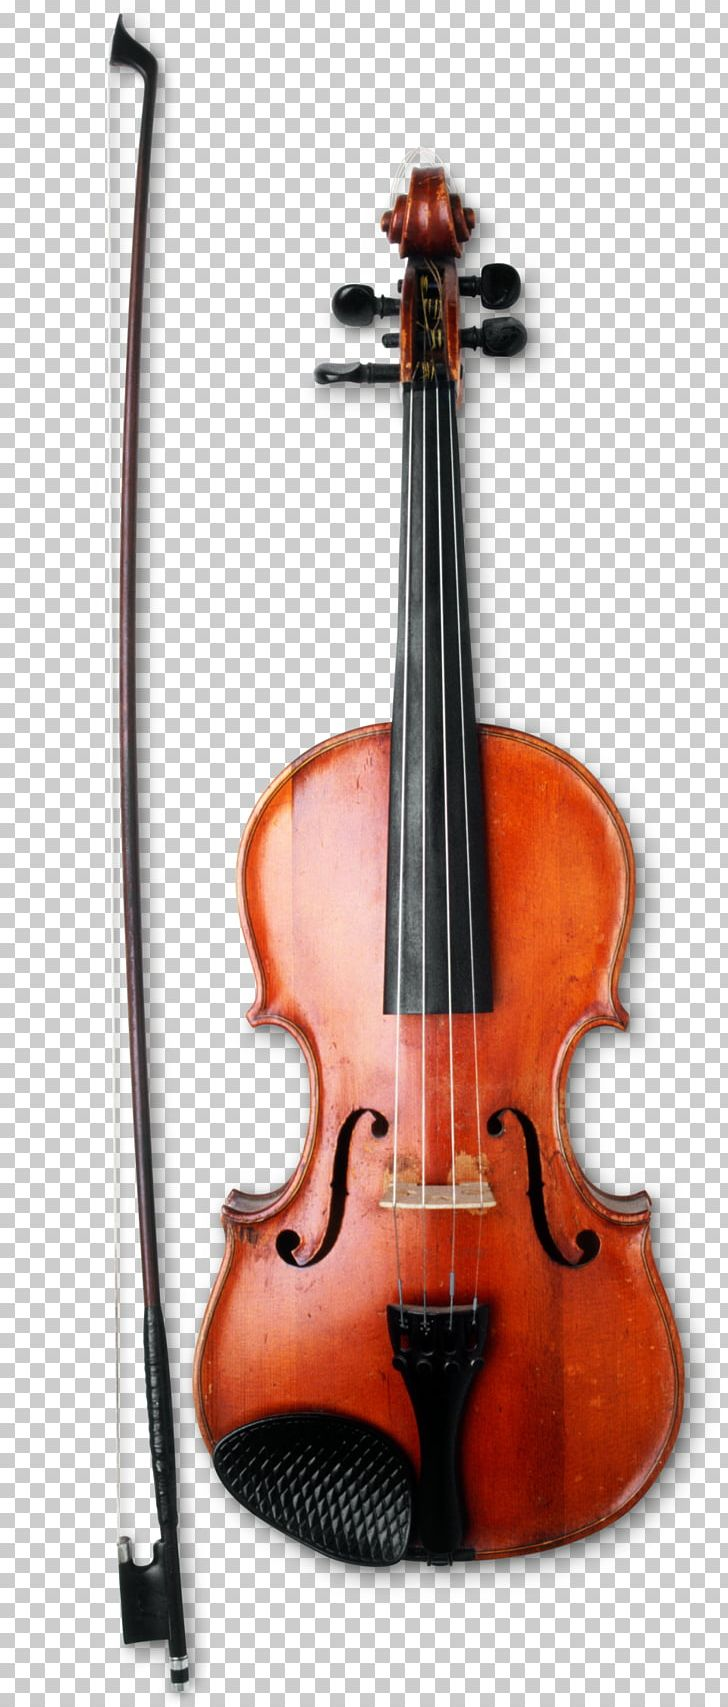 Violin Musical Instruments Bow String Instruments Viola PNG, Clipart, Bass Guitar, Bass Violin, Bluegrass, Bow, Bowed String Instrument Free PNG Download